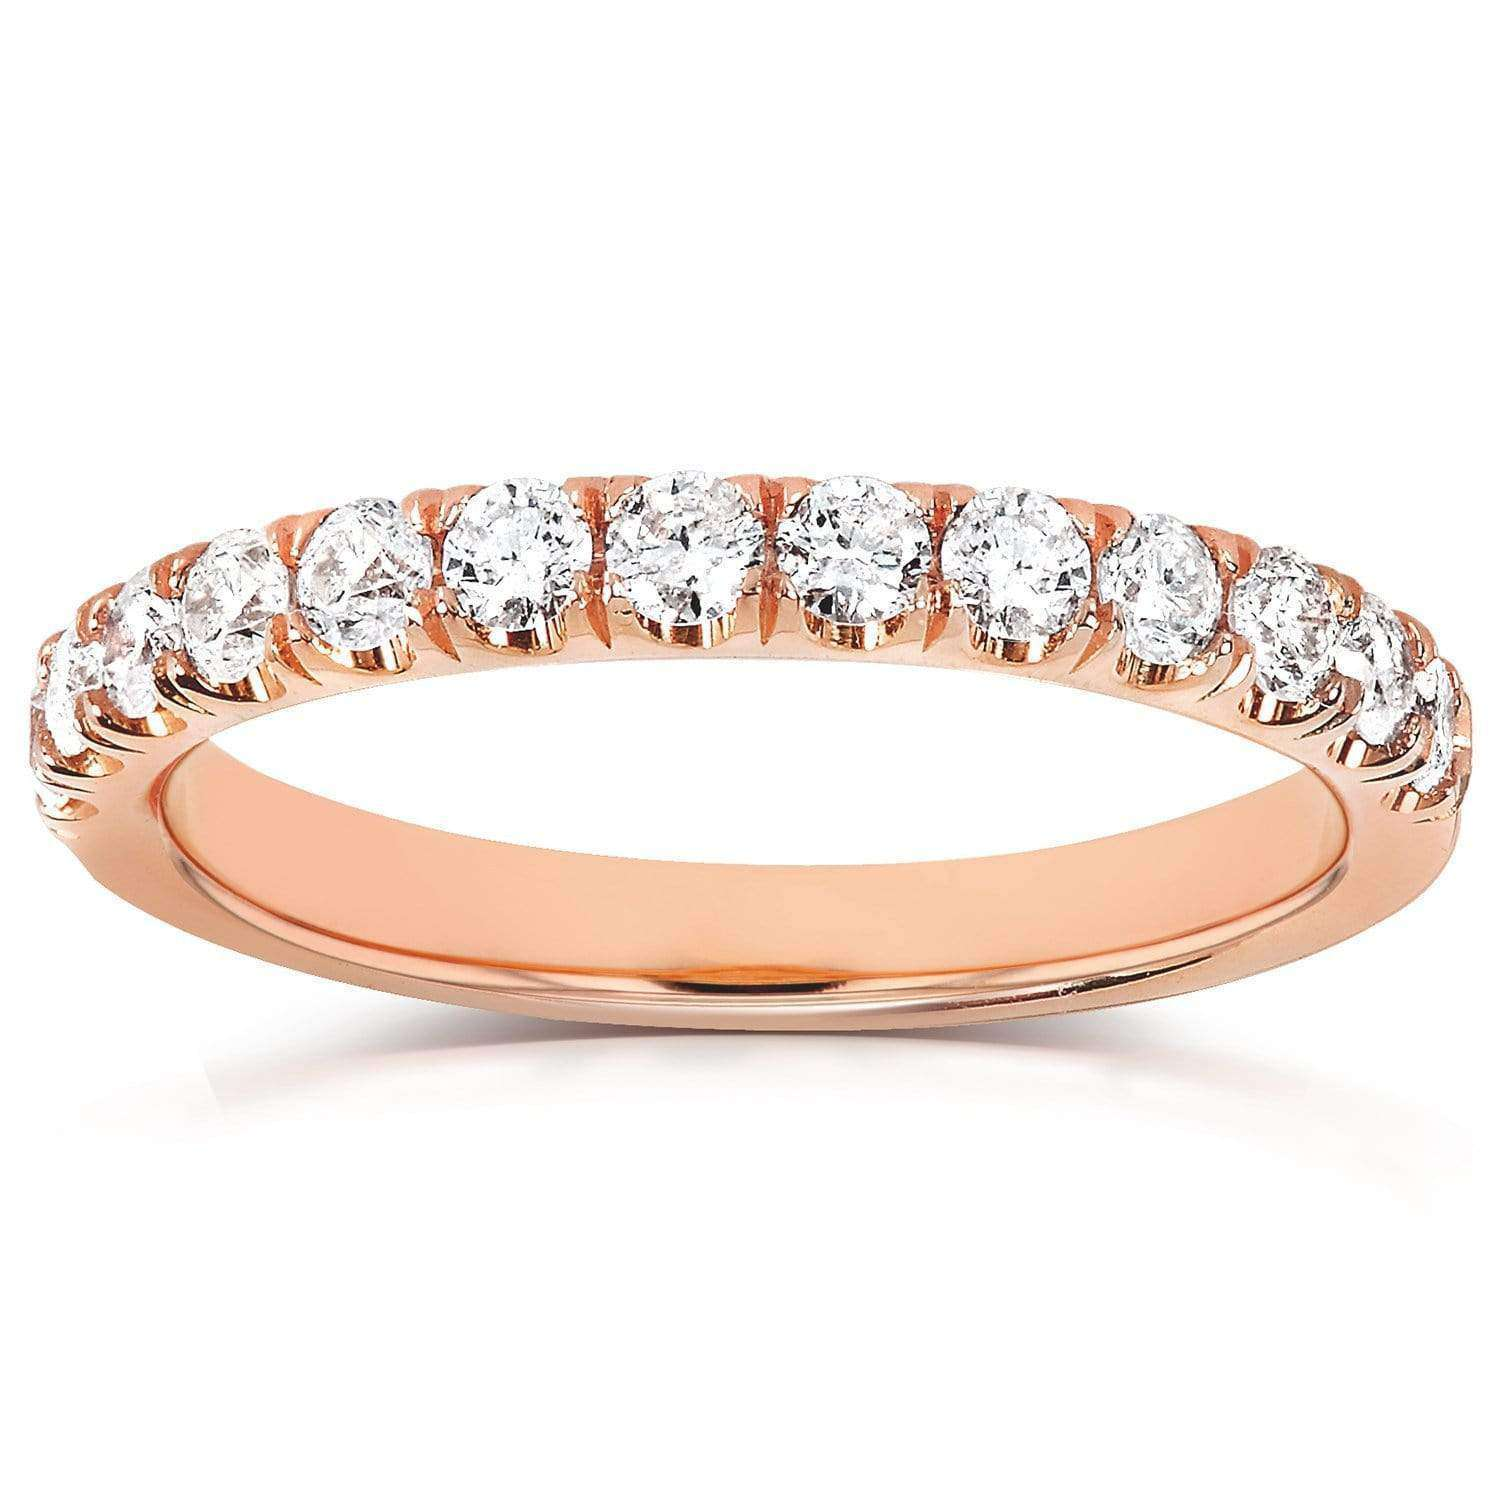 Coupons COMFORT FIT FRENCH PAVE LAB GROWN DIAMOND BAND - 4.5 14k Gold Rose Gold